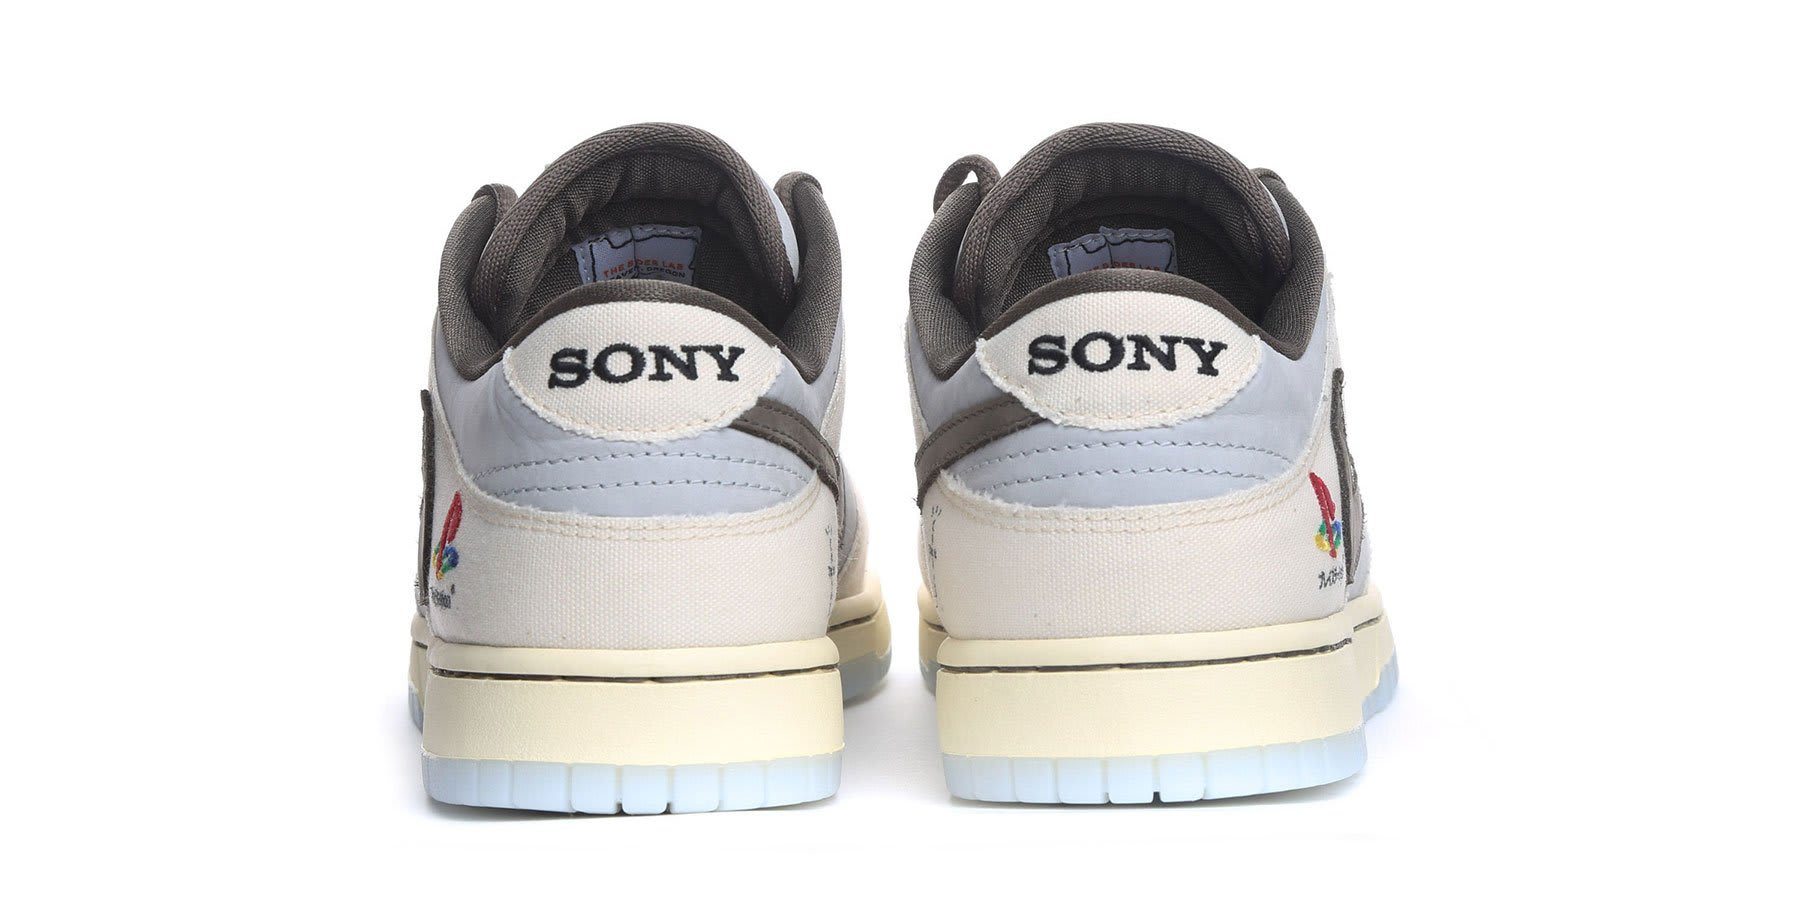 Travis Scott x Playstation x Dunk Low